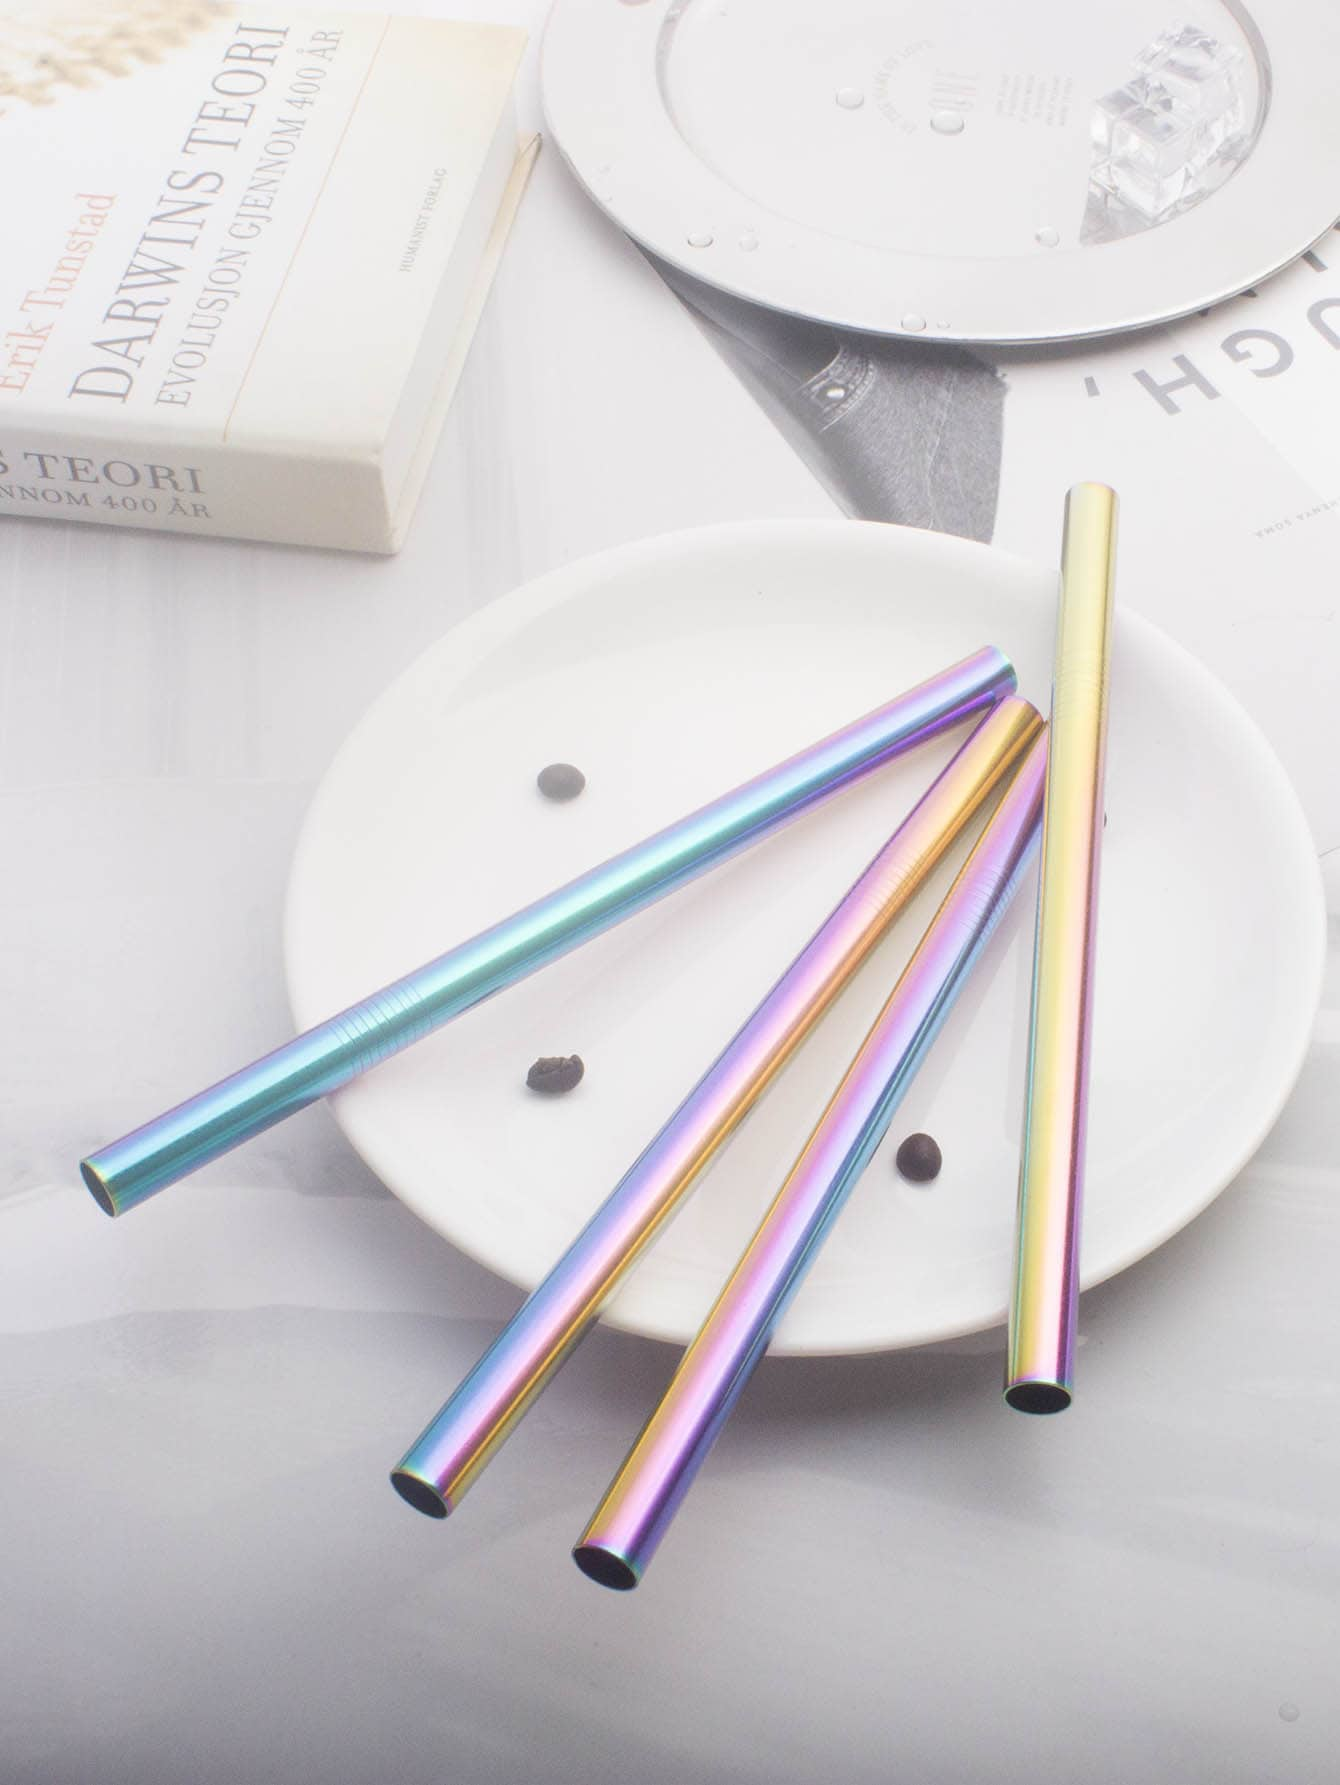 4pcs Straw & 1pc Brush & 1pc Pouch 1pc